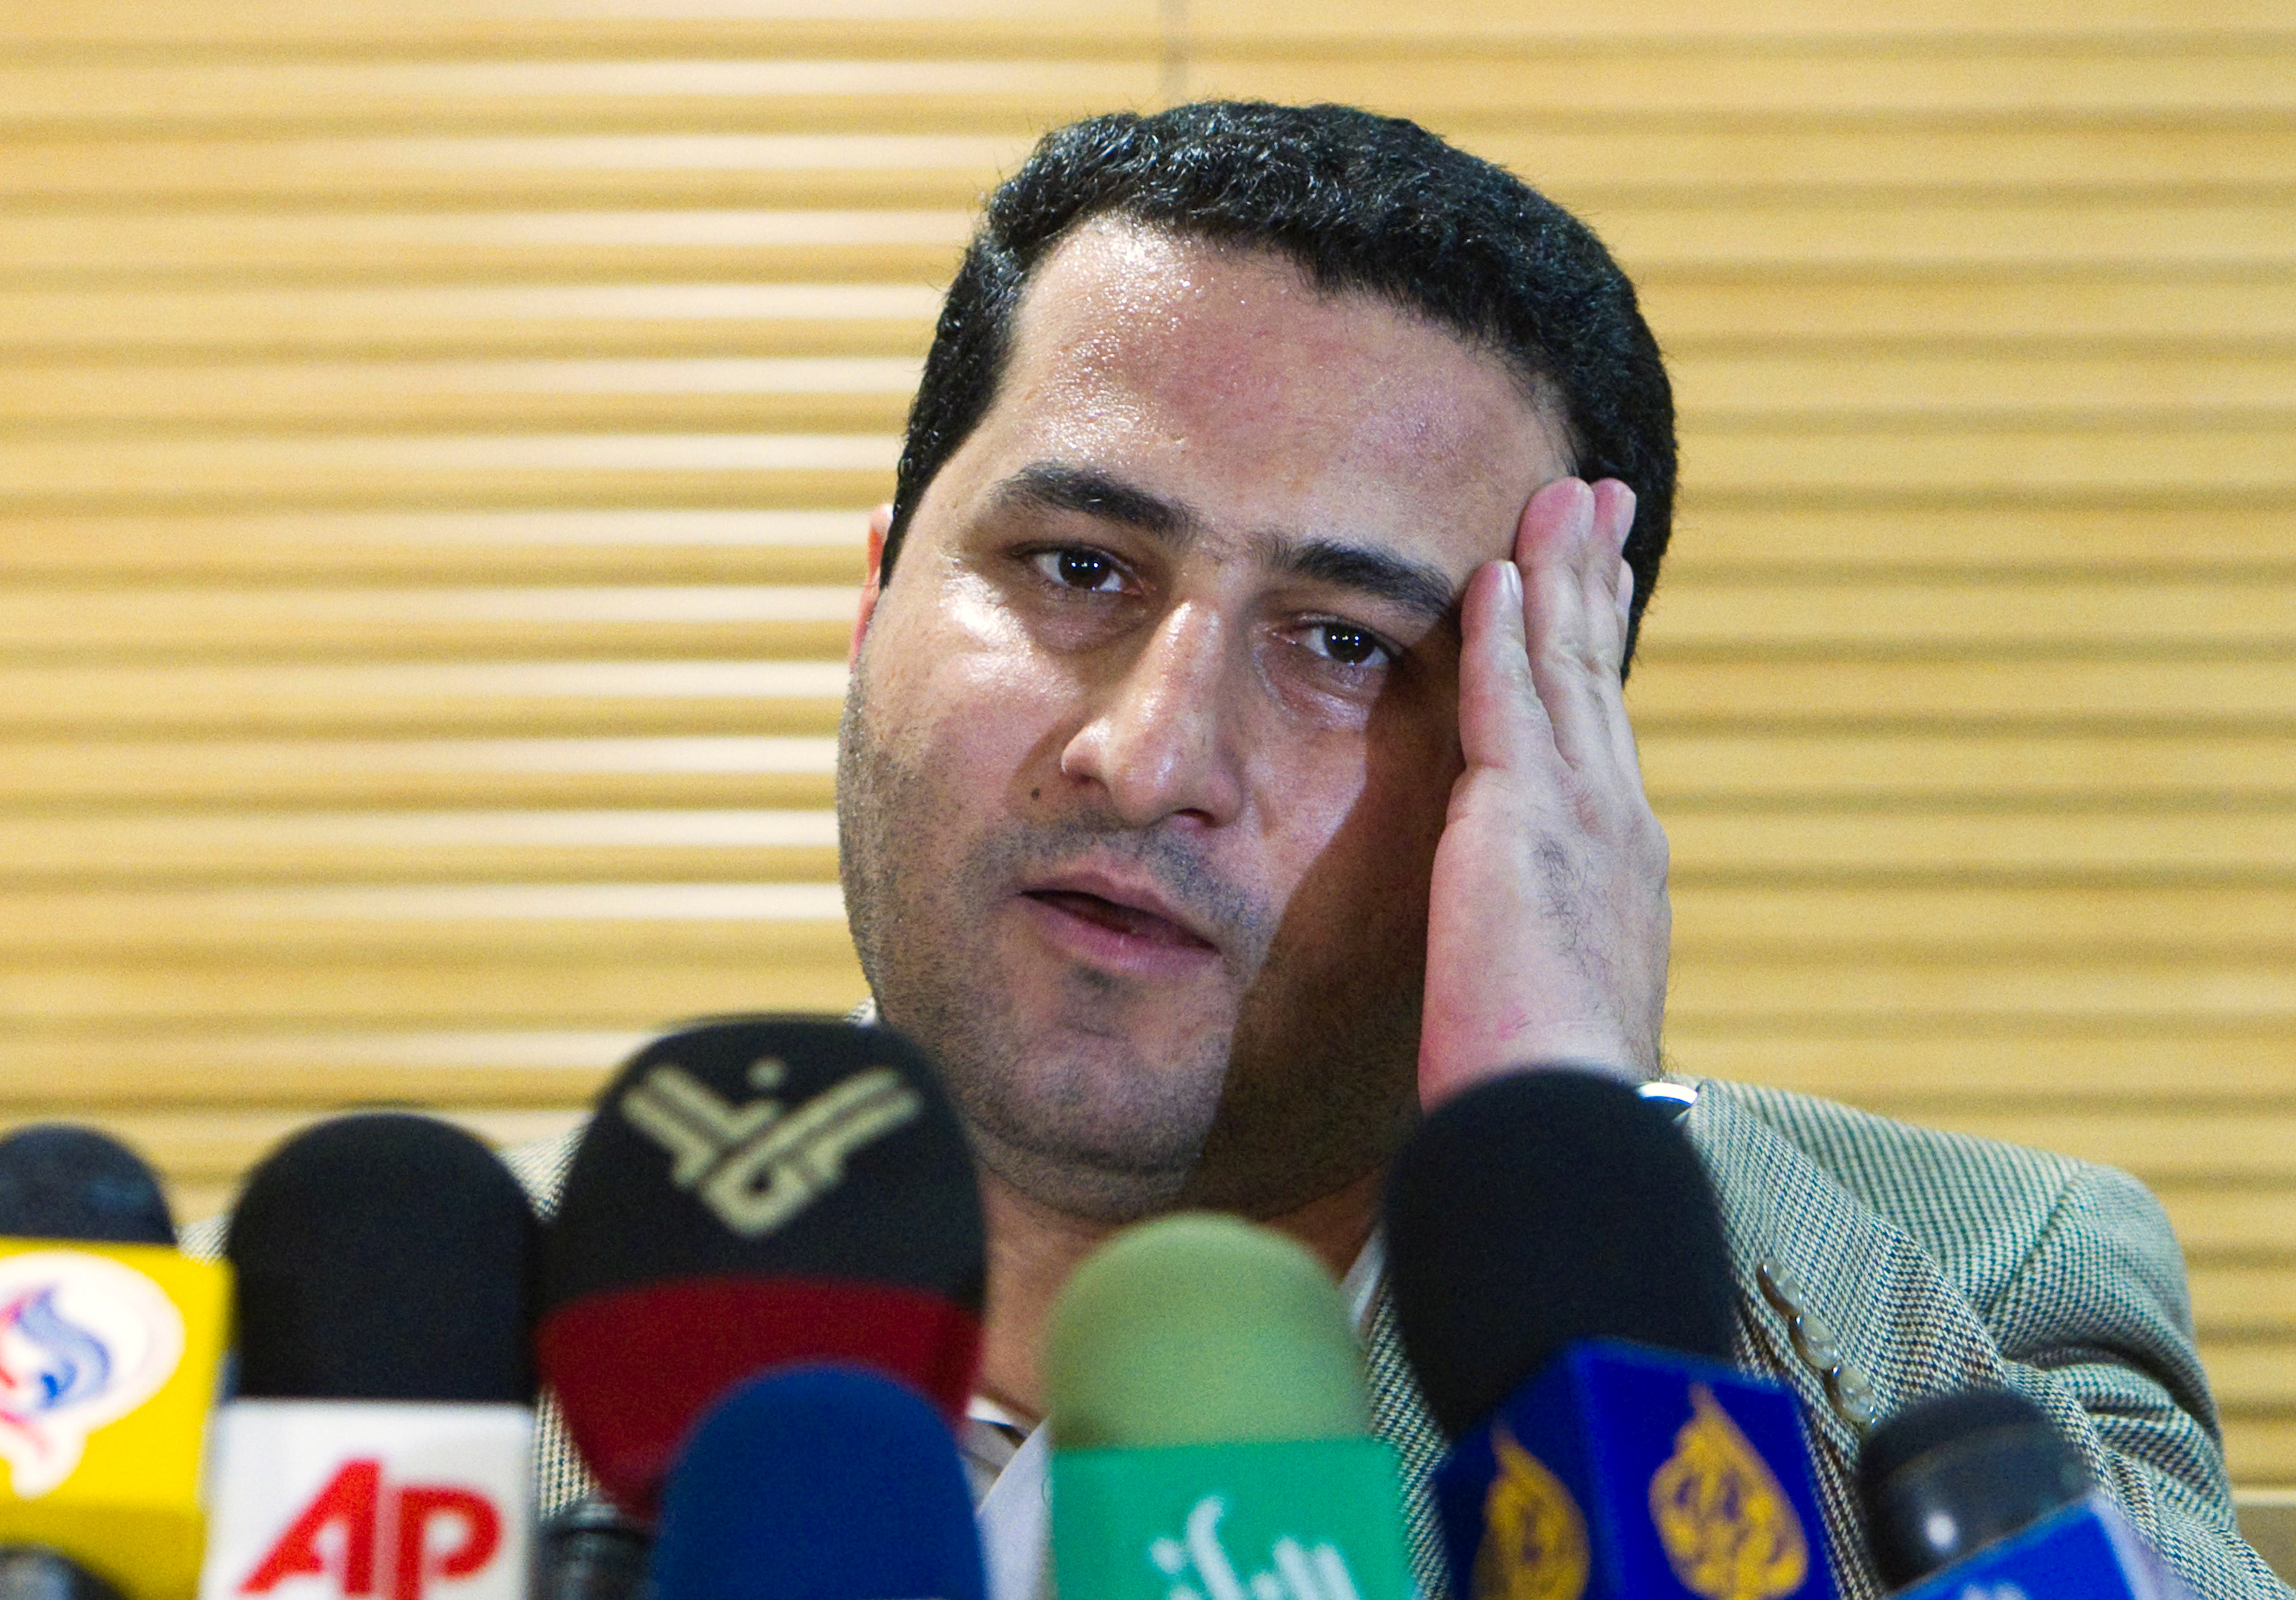 Donald Trump has suggested Hillary Clinton may be responsible for Iran's execution of nuclear scientist Shahram Amiri.